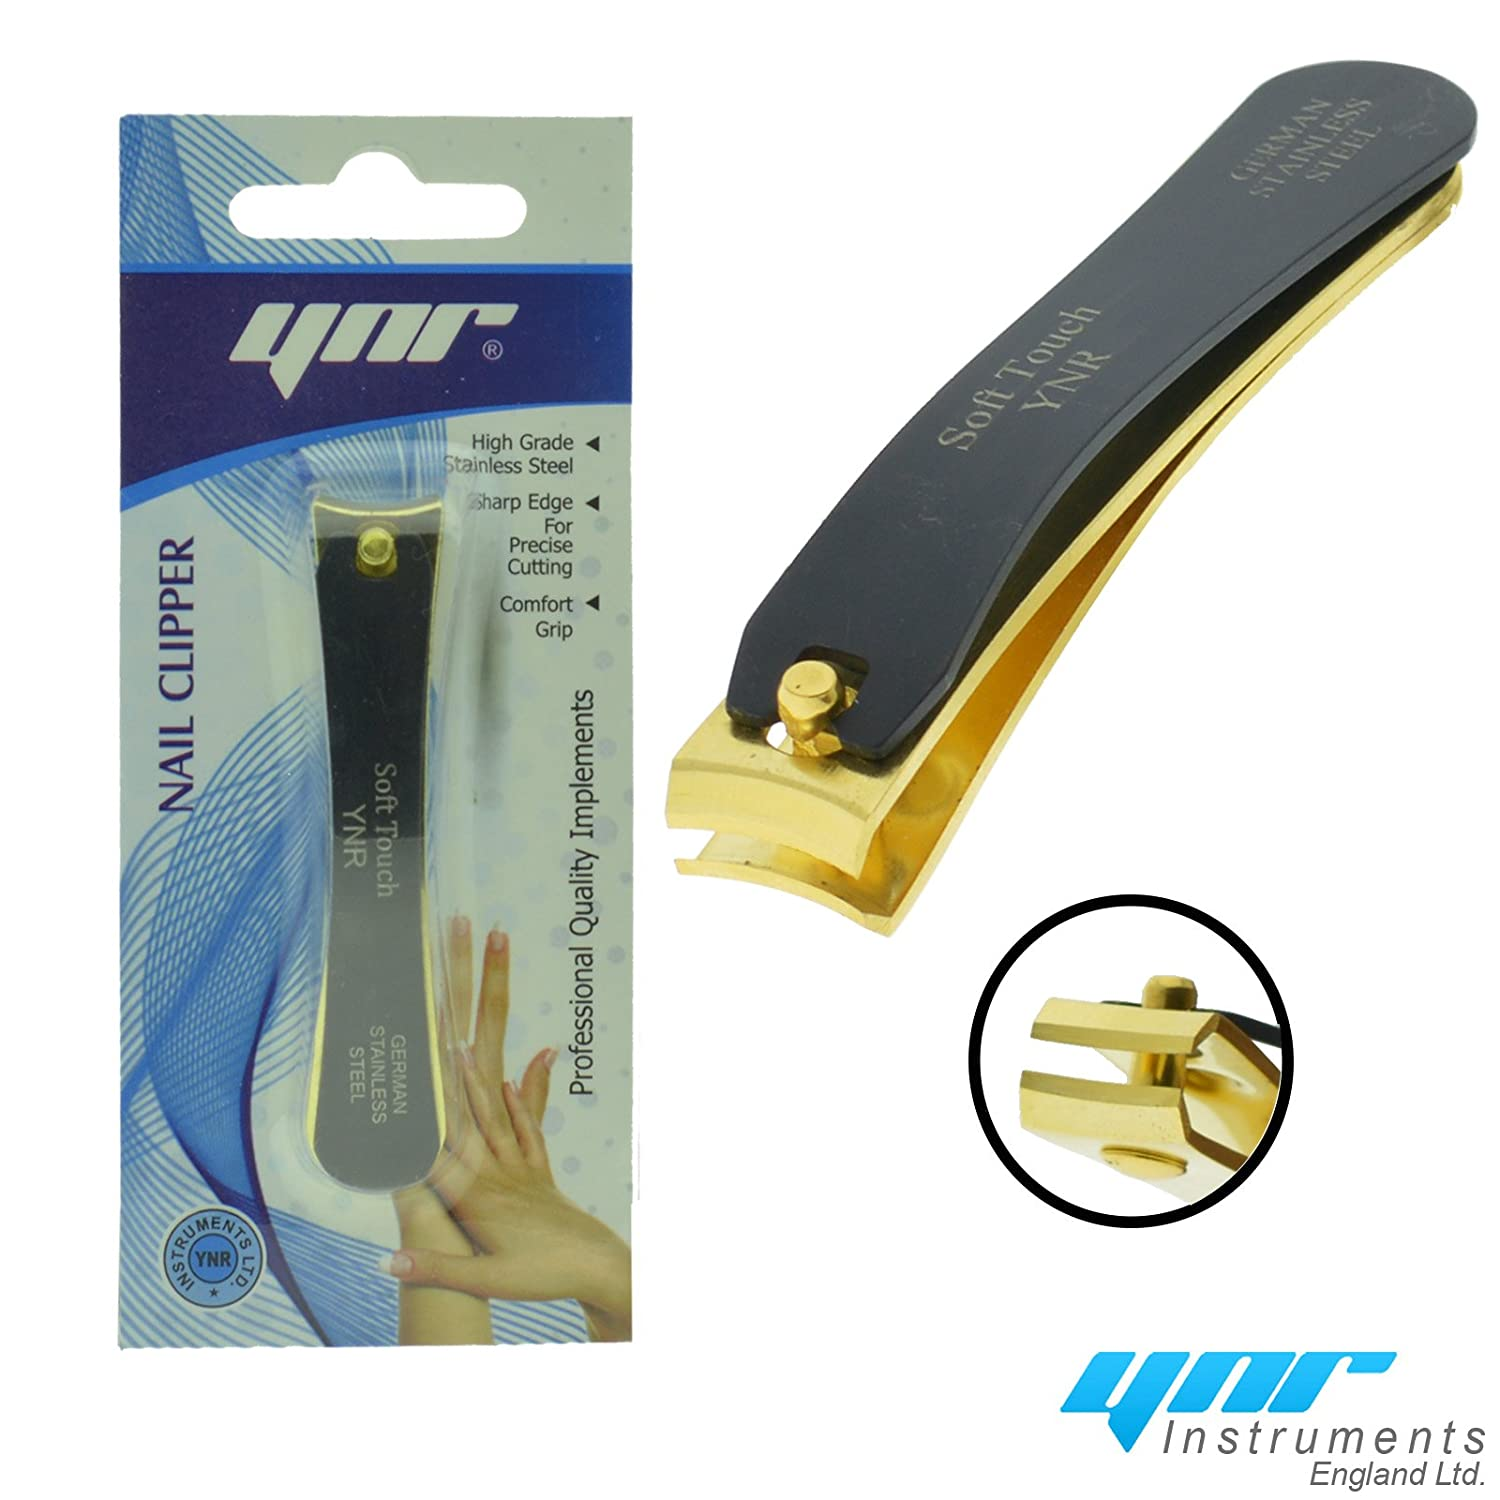 Professional German Black & Gold Toe Nail Cutter Clipper Nippers Chiropody Heavy Duty Thick Nails YNR Instruments Ltd B -1